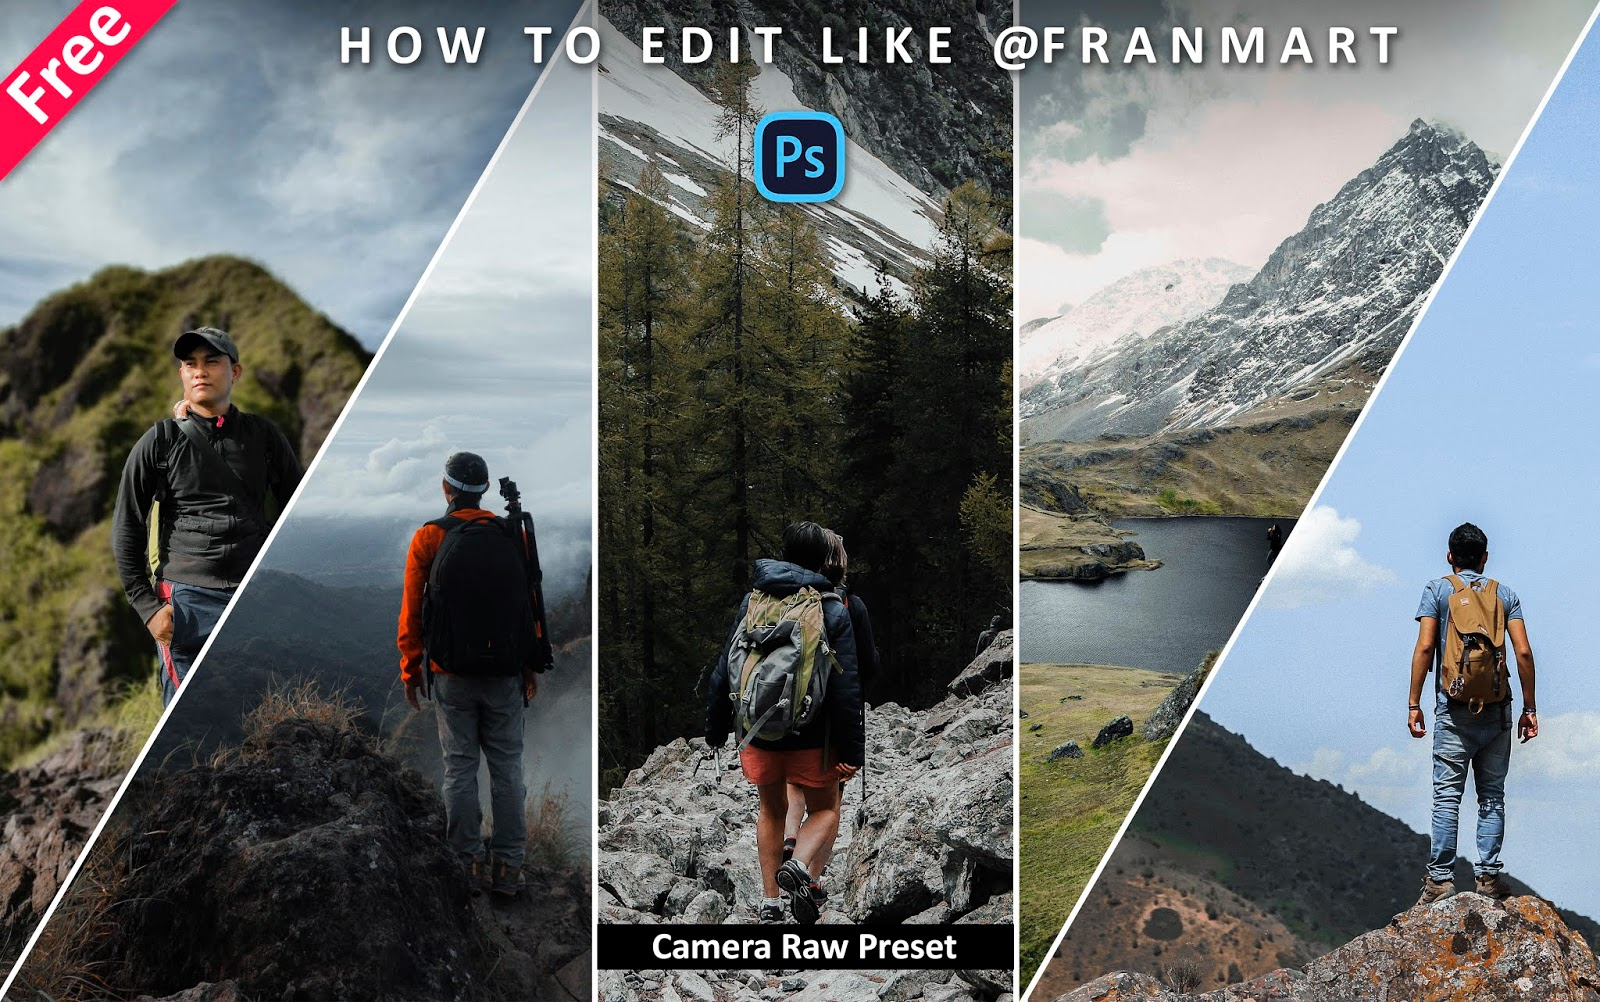 Download Franmart Camera Raw Preset for Free | How to Edit Photos Like Franmart in Photoshop